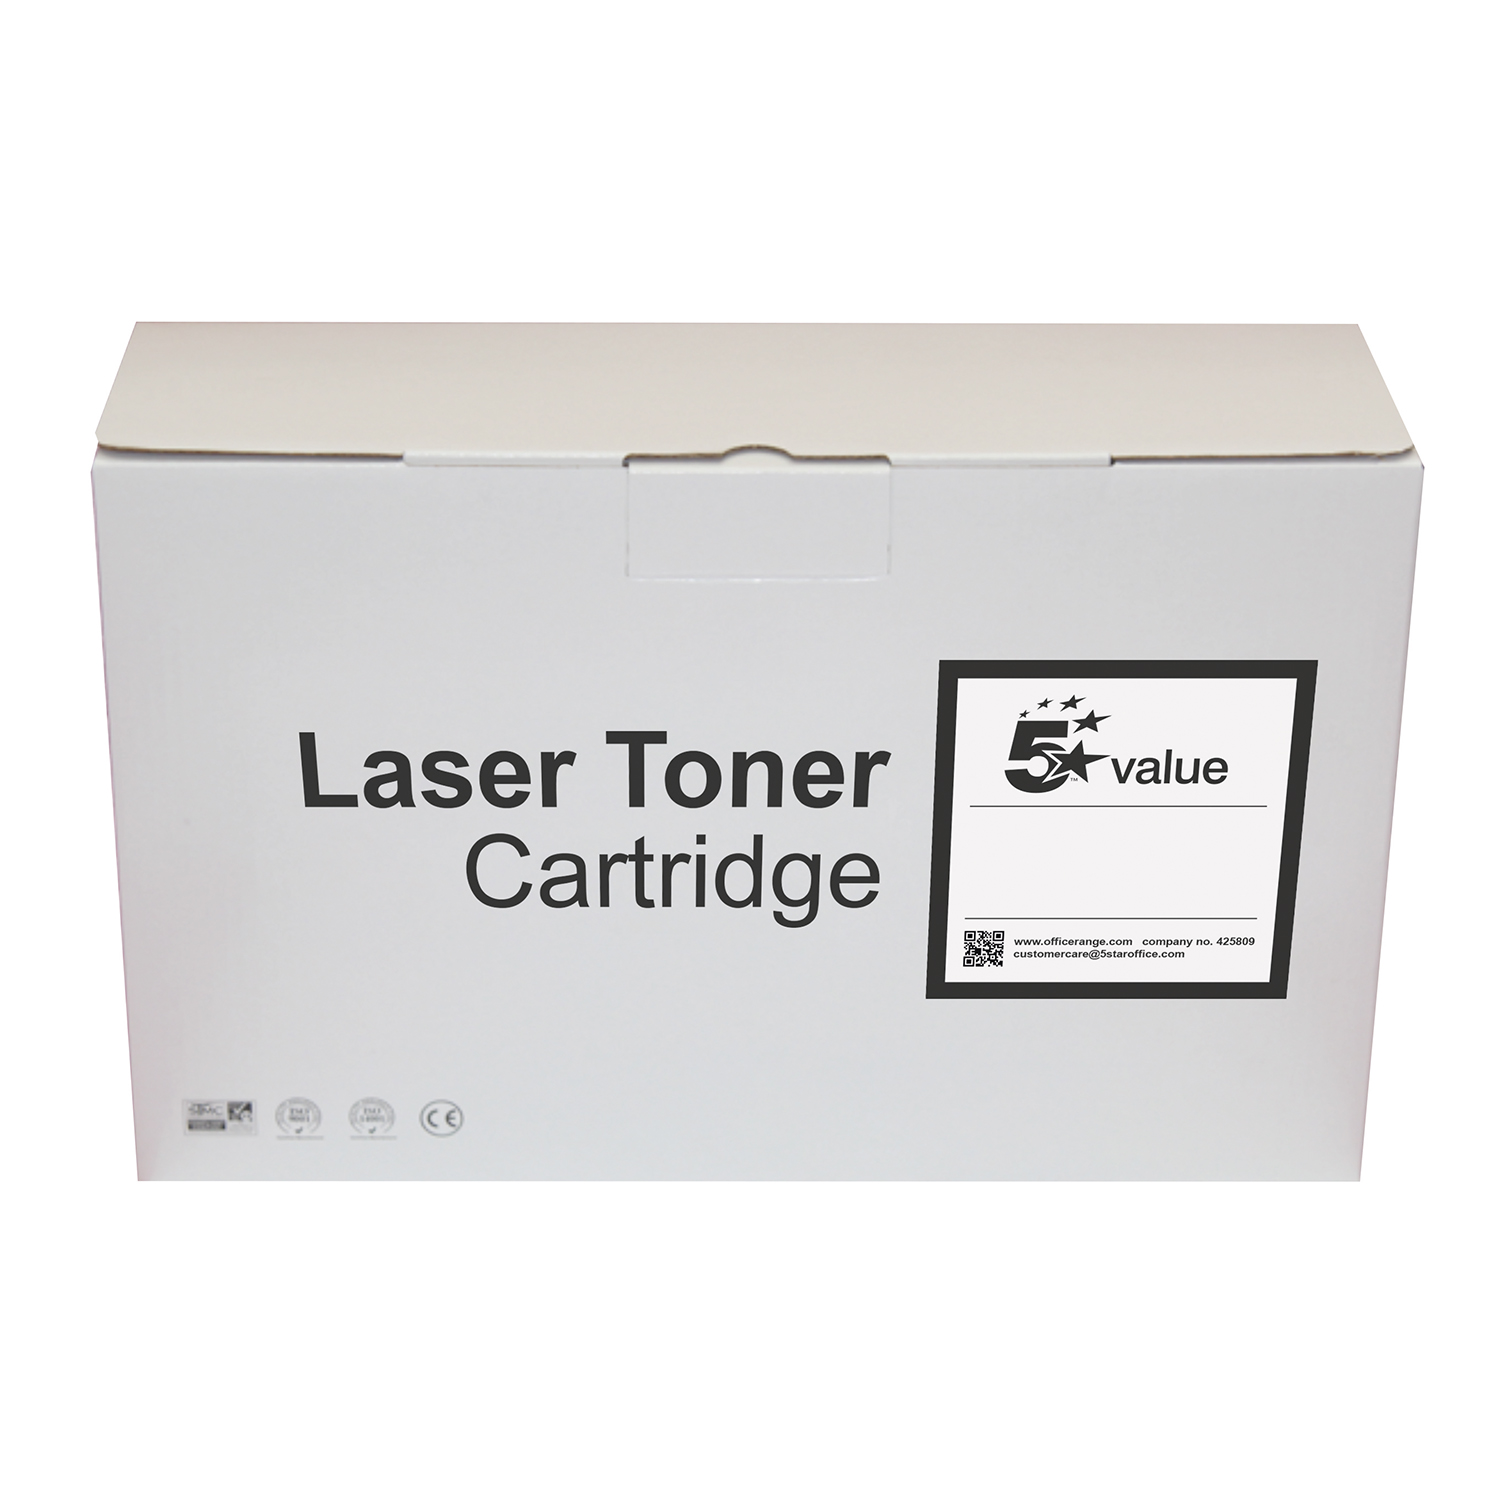 Laser Toner Cartridges 5 Star Value HP 125A Toner Cartridge Cyan CB541A